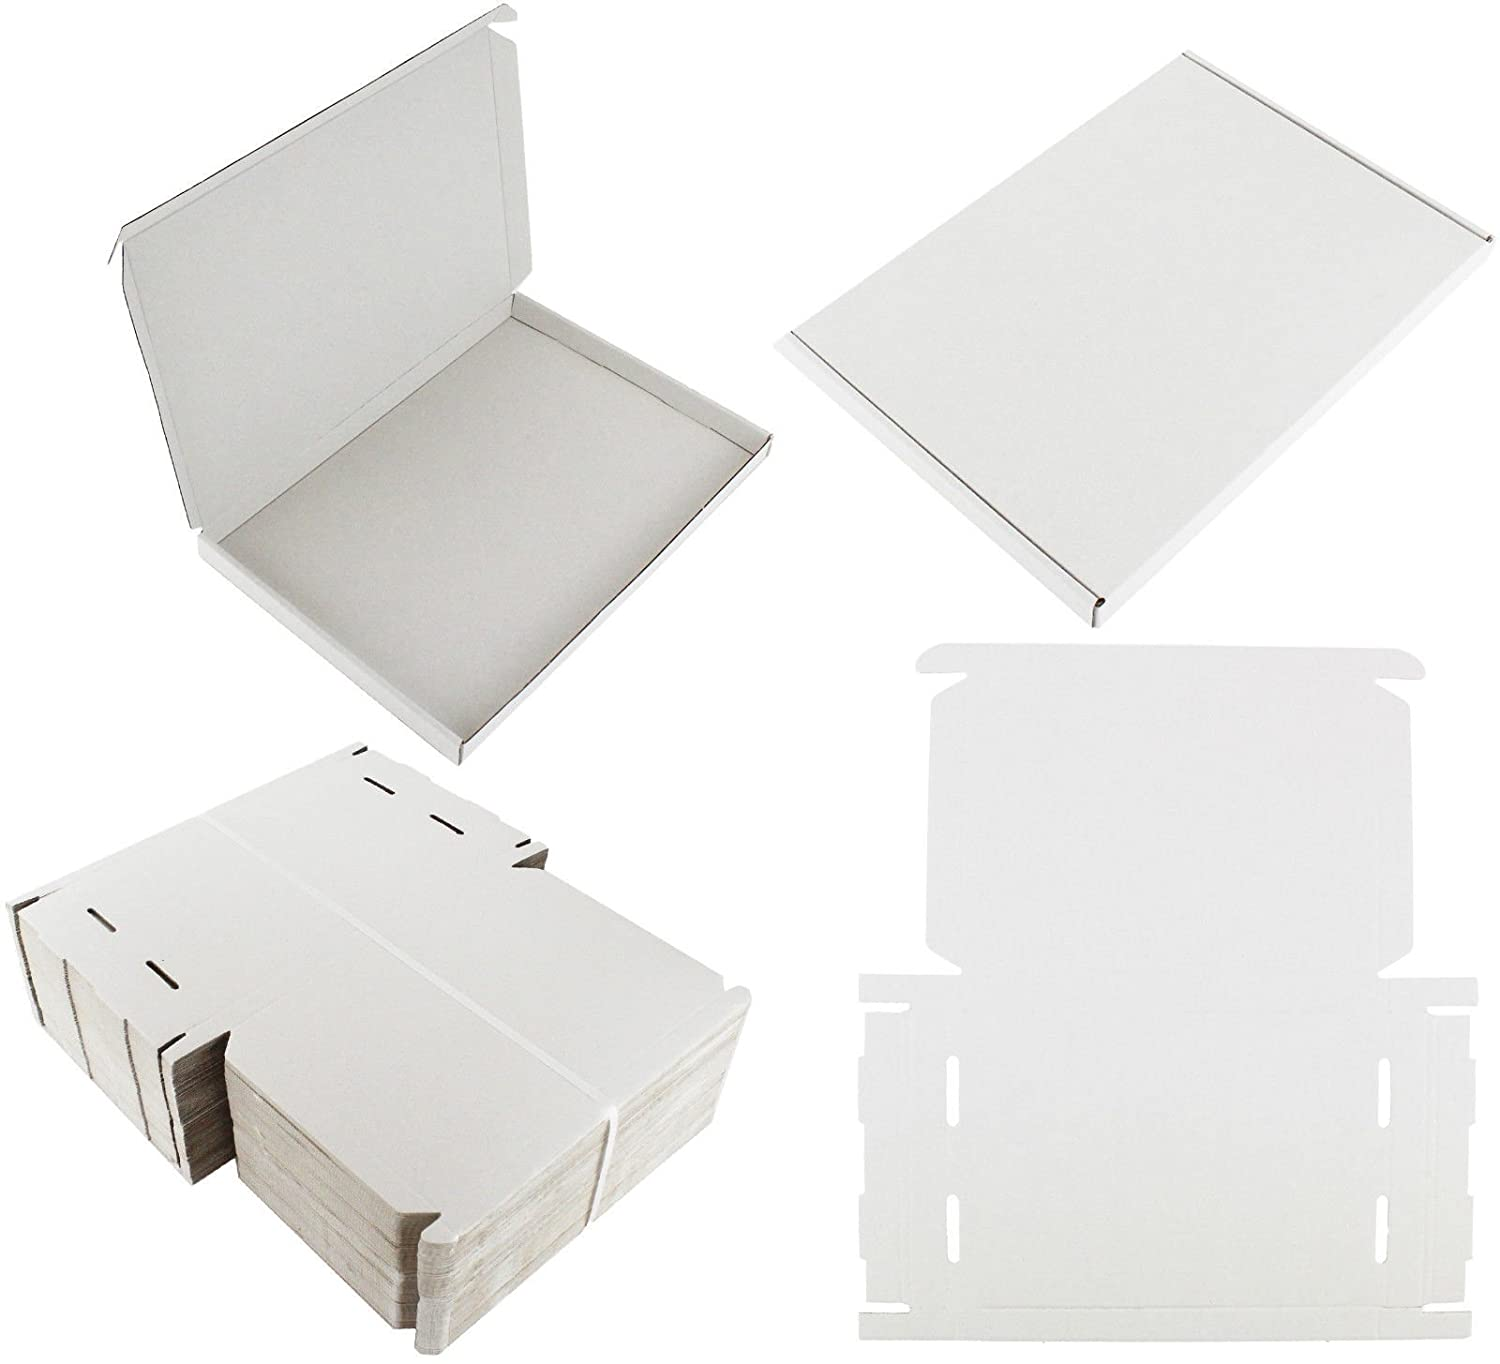 10 x WHITE C4 A4 SIZE BOX LARGE LETTER STRONG CARDBOARD SHIPPING MAILING POSTAL PIP MADE IN UK